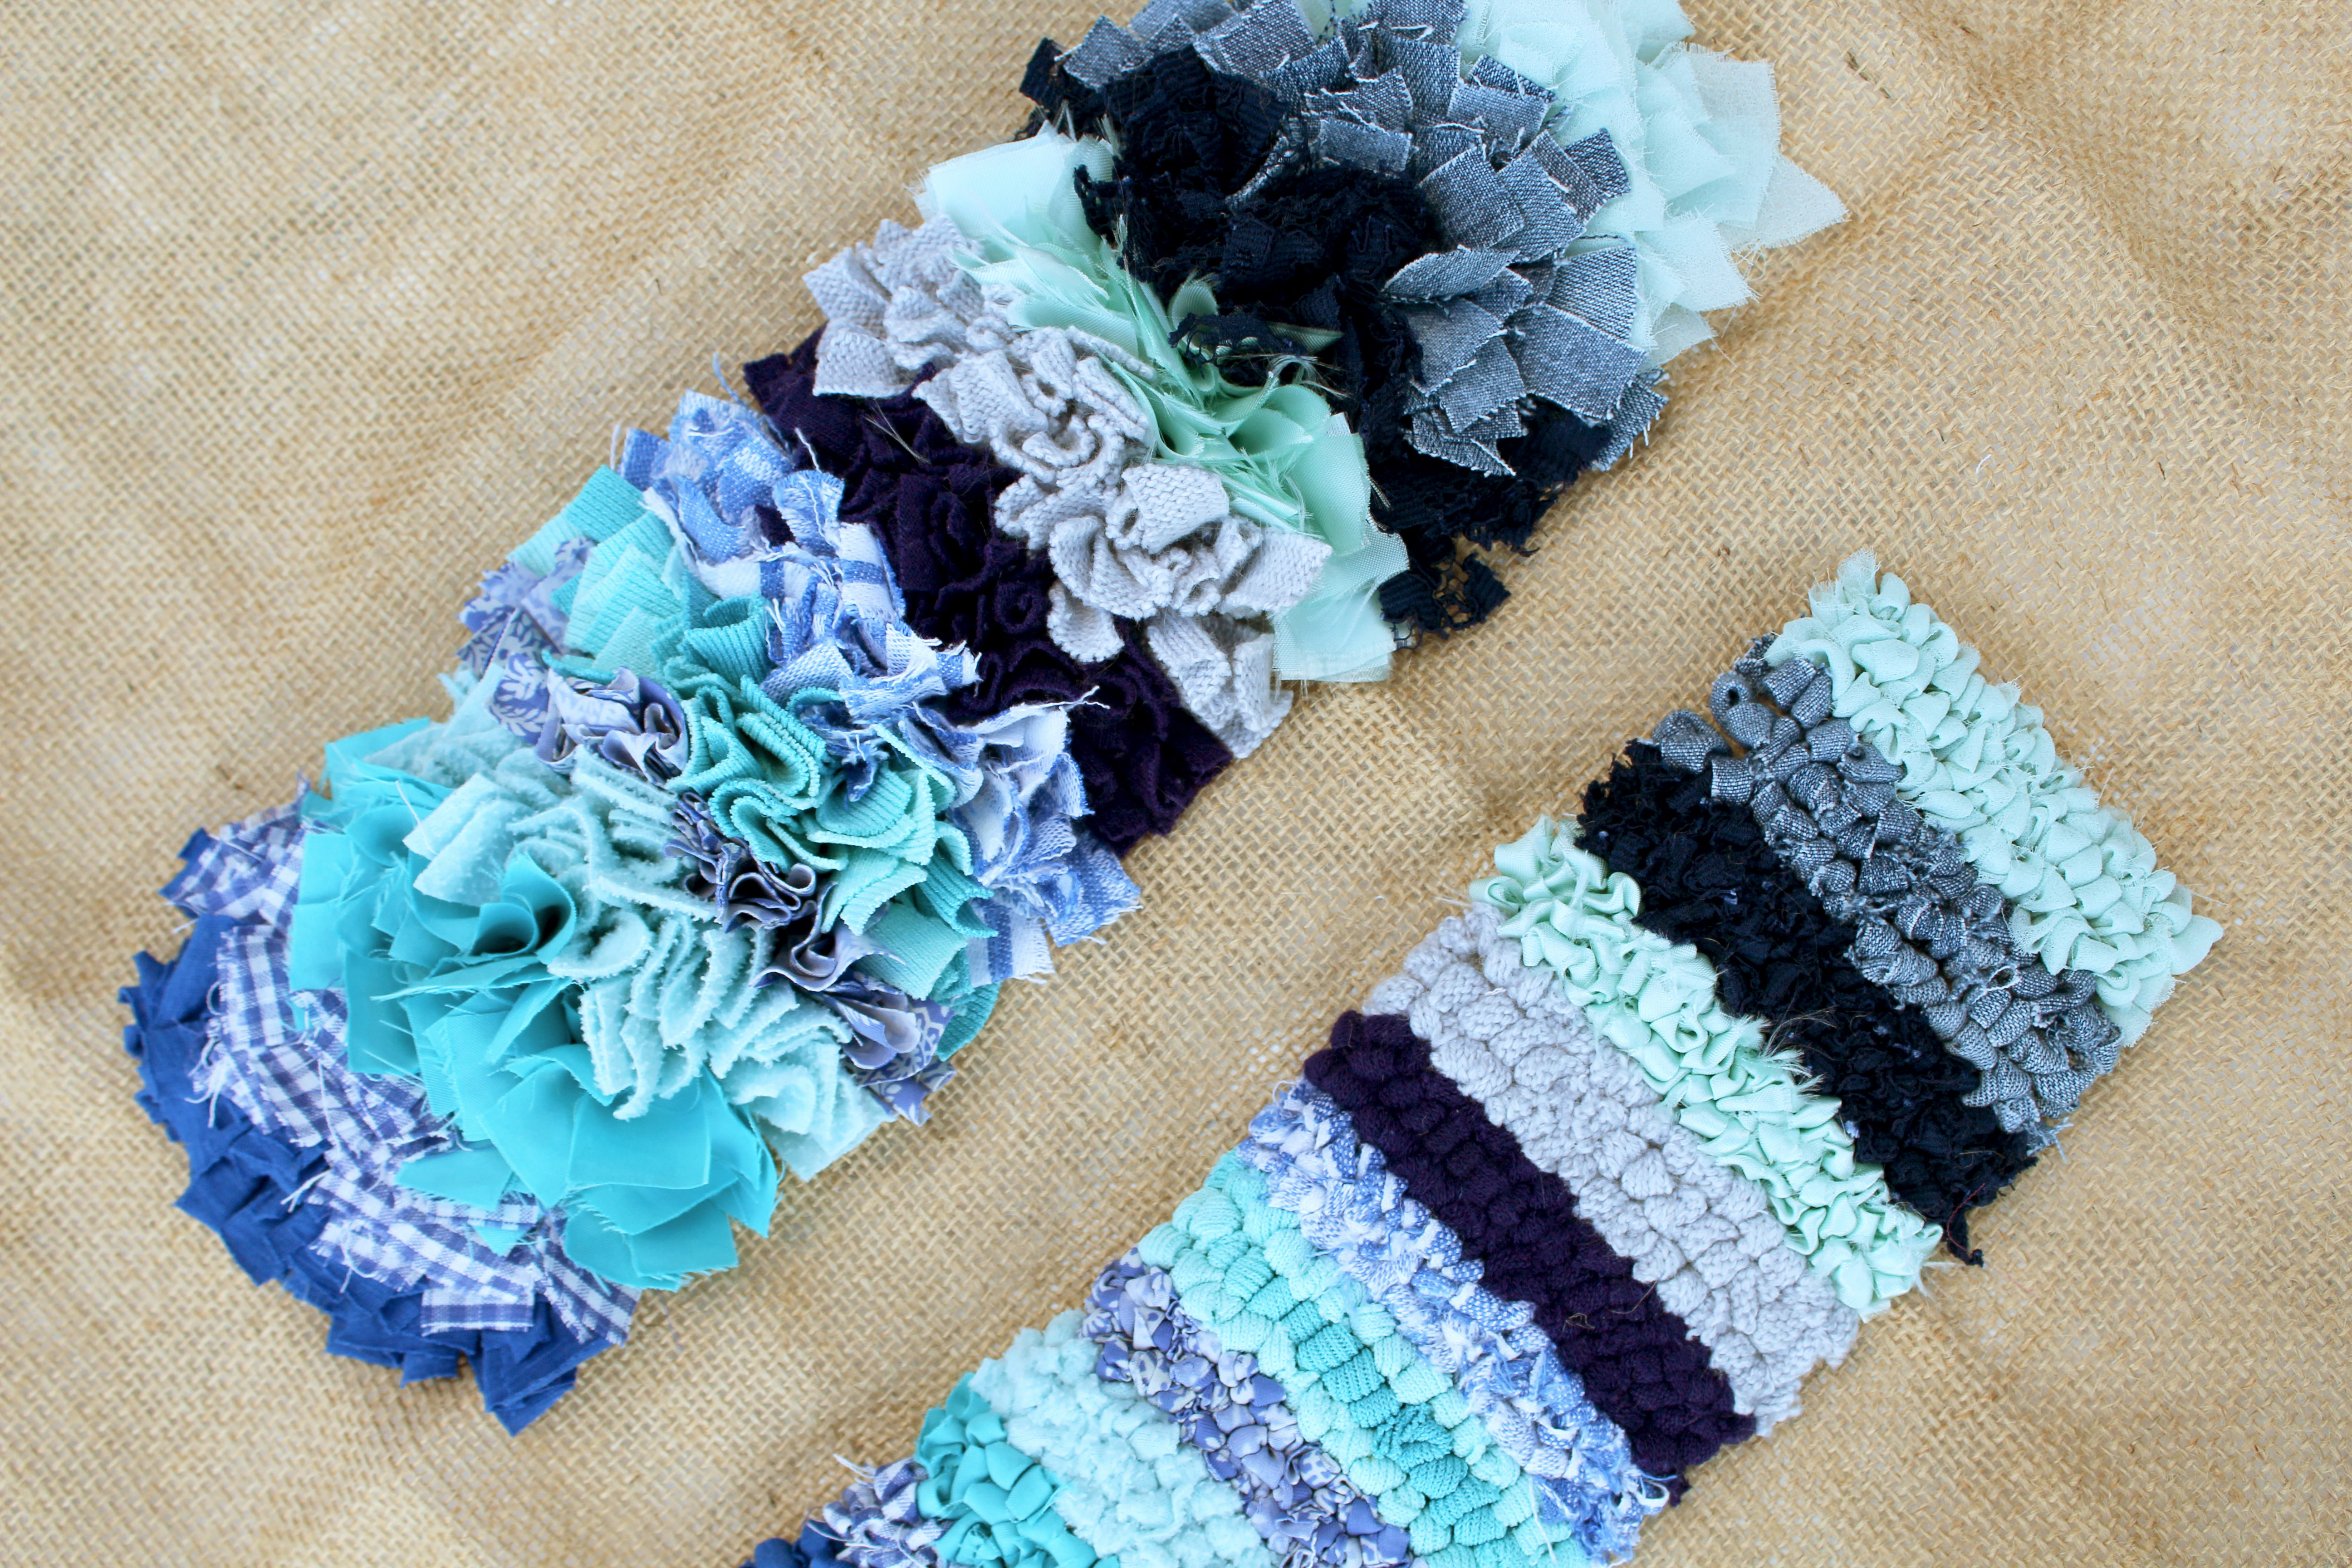 A range of different rag rug fabrics in the shaggy and loopy rag rugging techniques